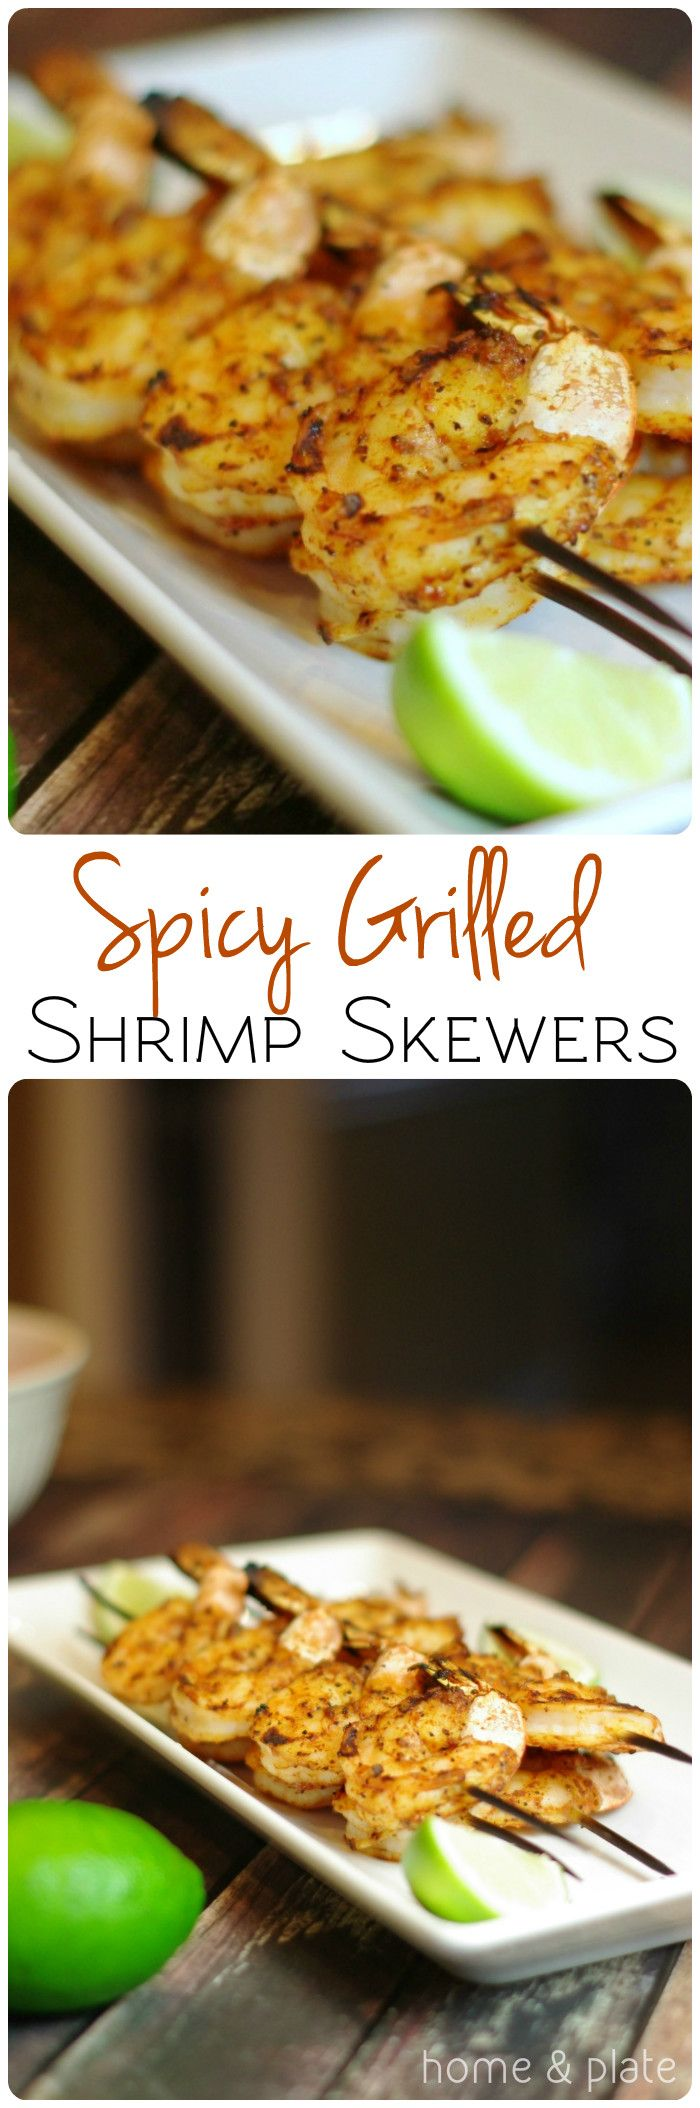 Spicy Grilled Shrimp Skewers | Home & Plate | www.homeandplate.com | Toss peeled and deveined raw shrimp with my basic barbecue rub and thread them on skewers before placing them on the grill.